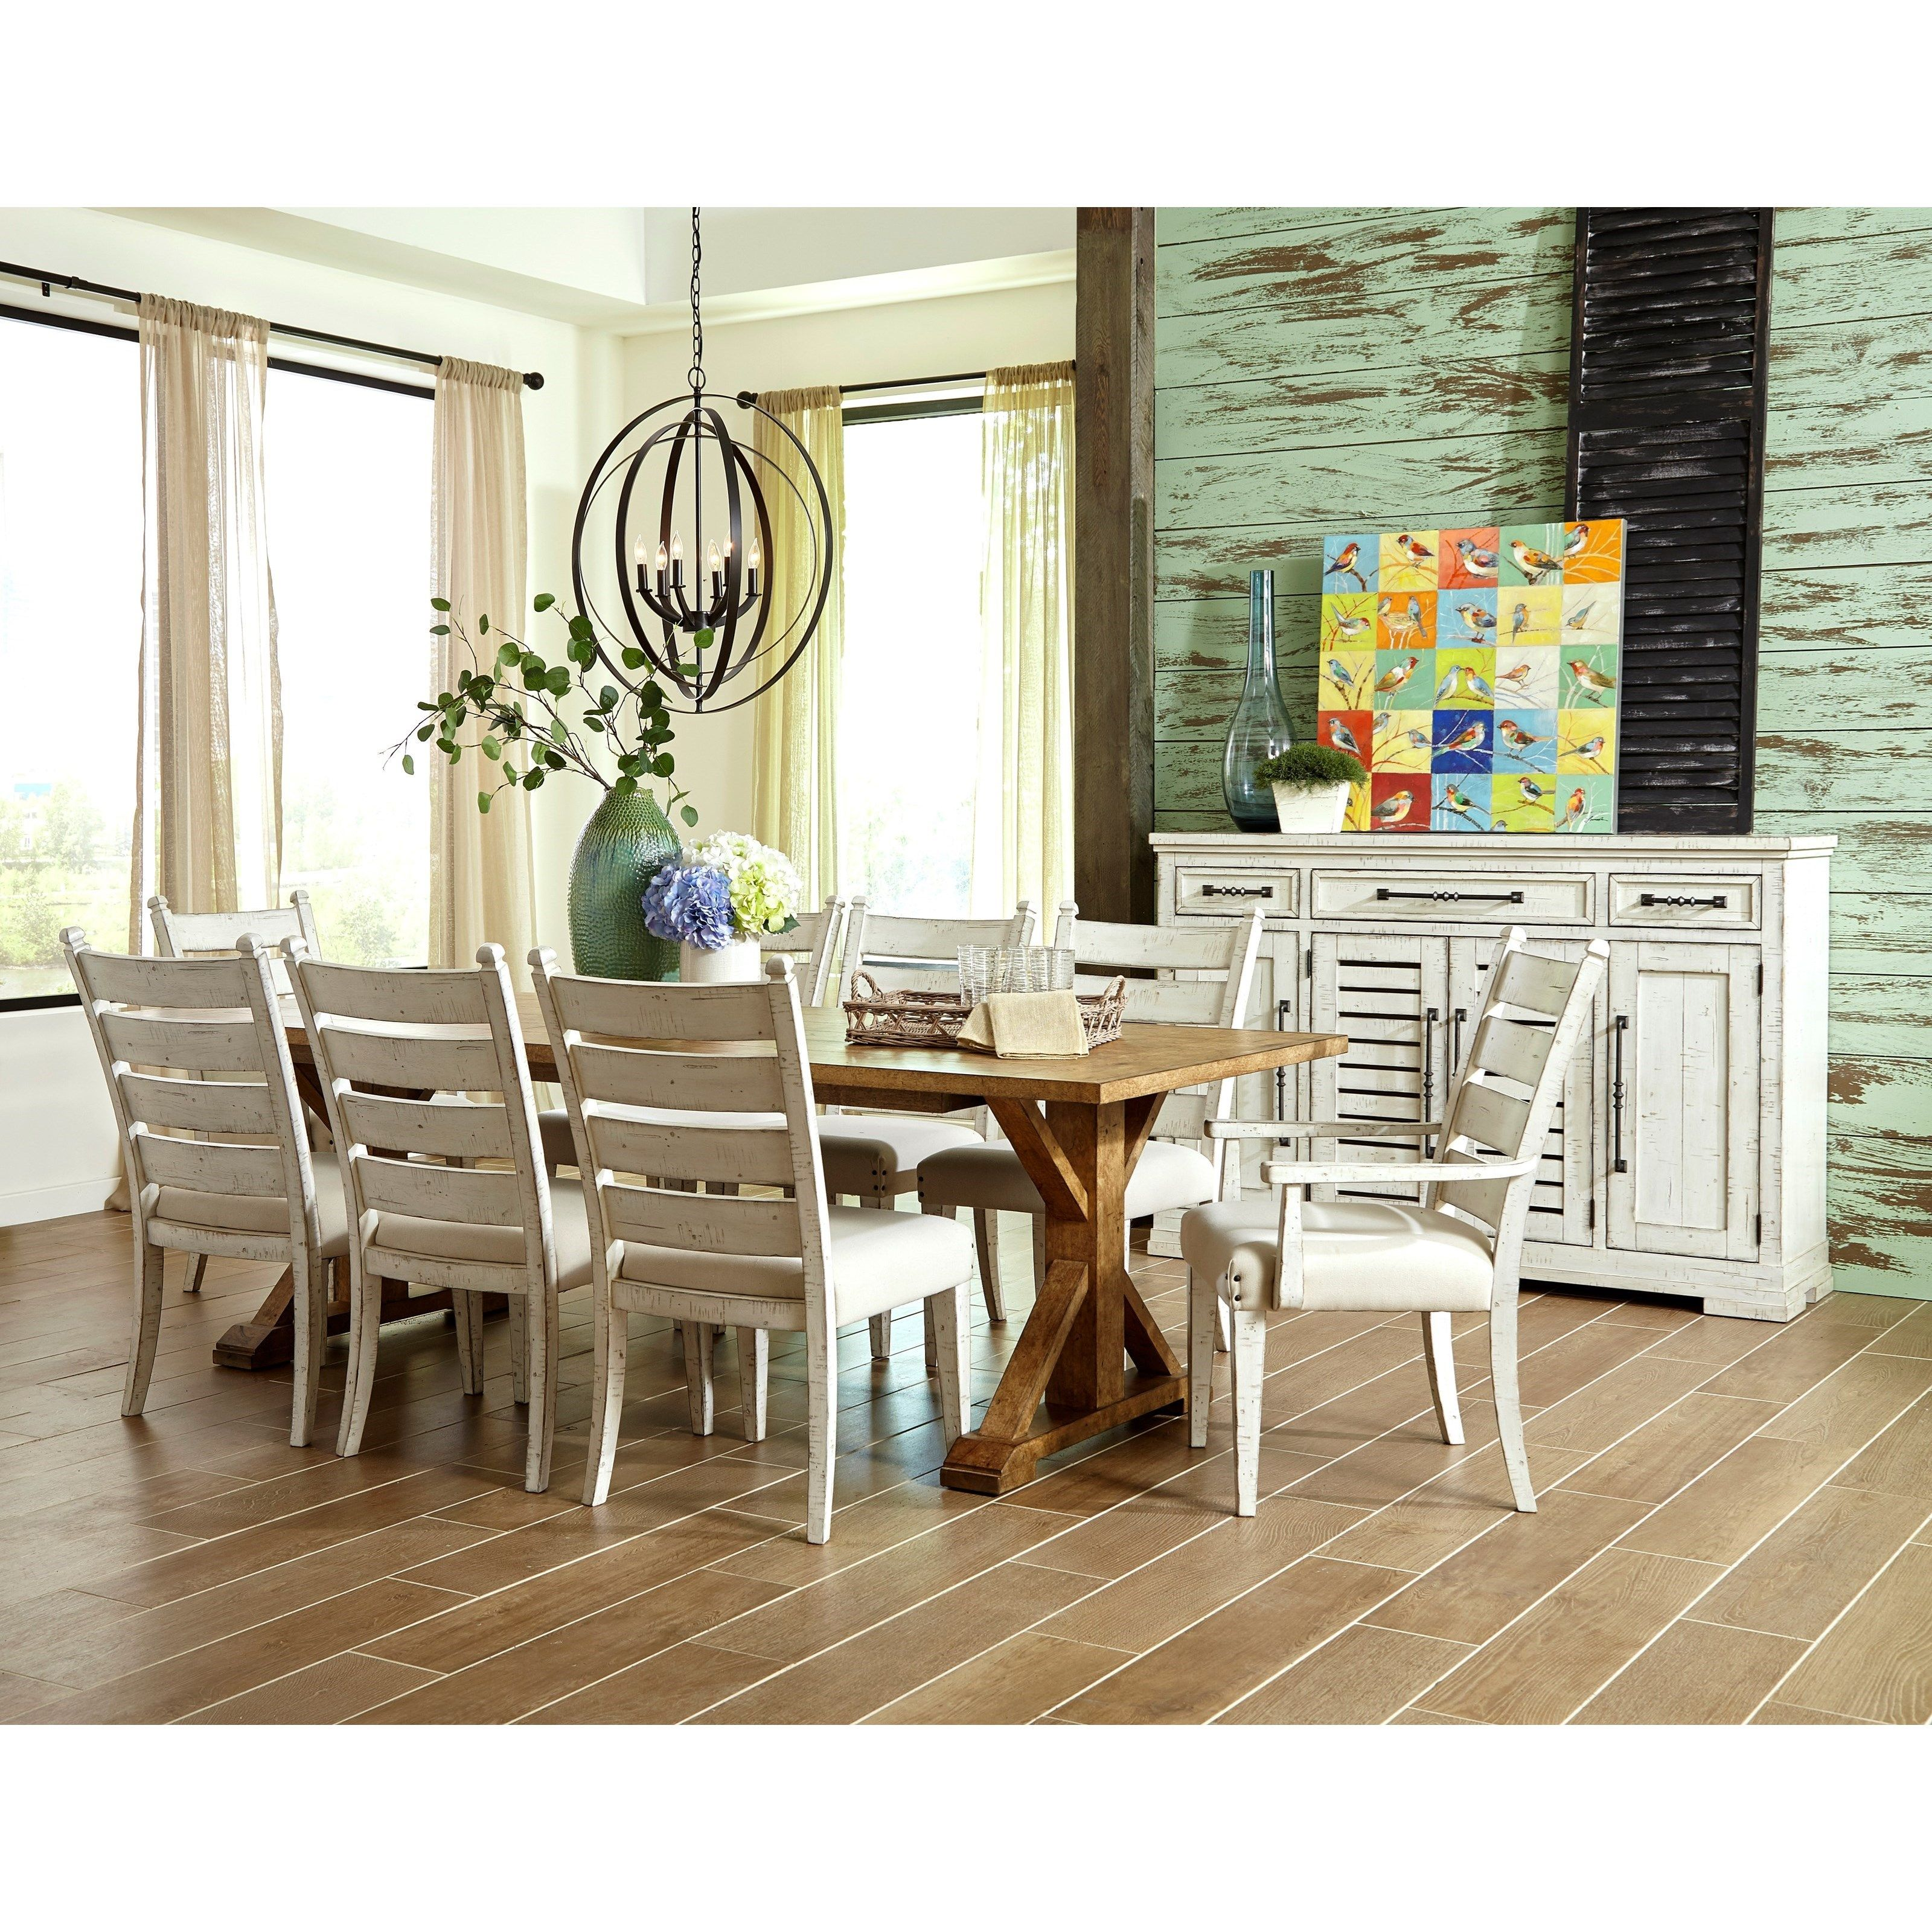 Cheap Formal Dining Room Sets: Coming Home Hospitality Server With Silverware Tray By